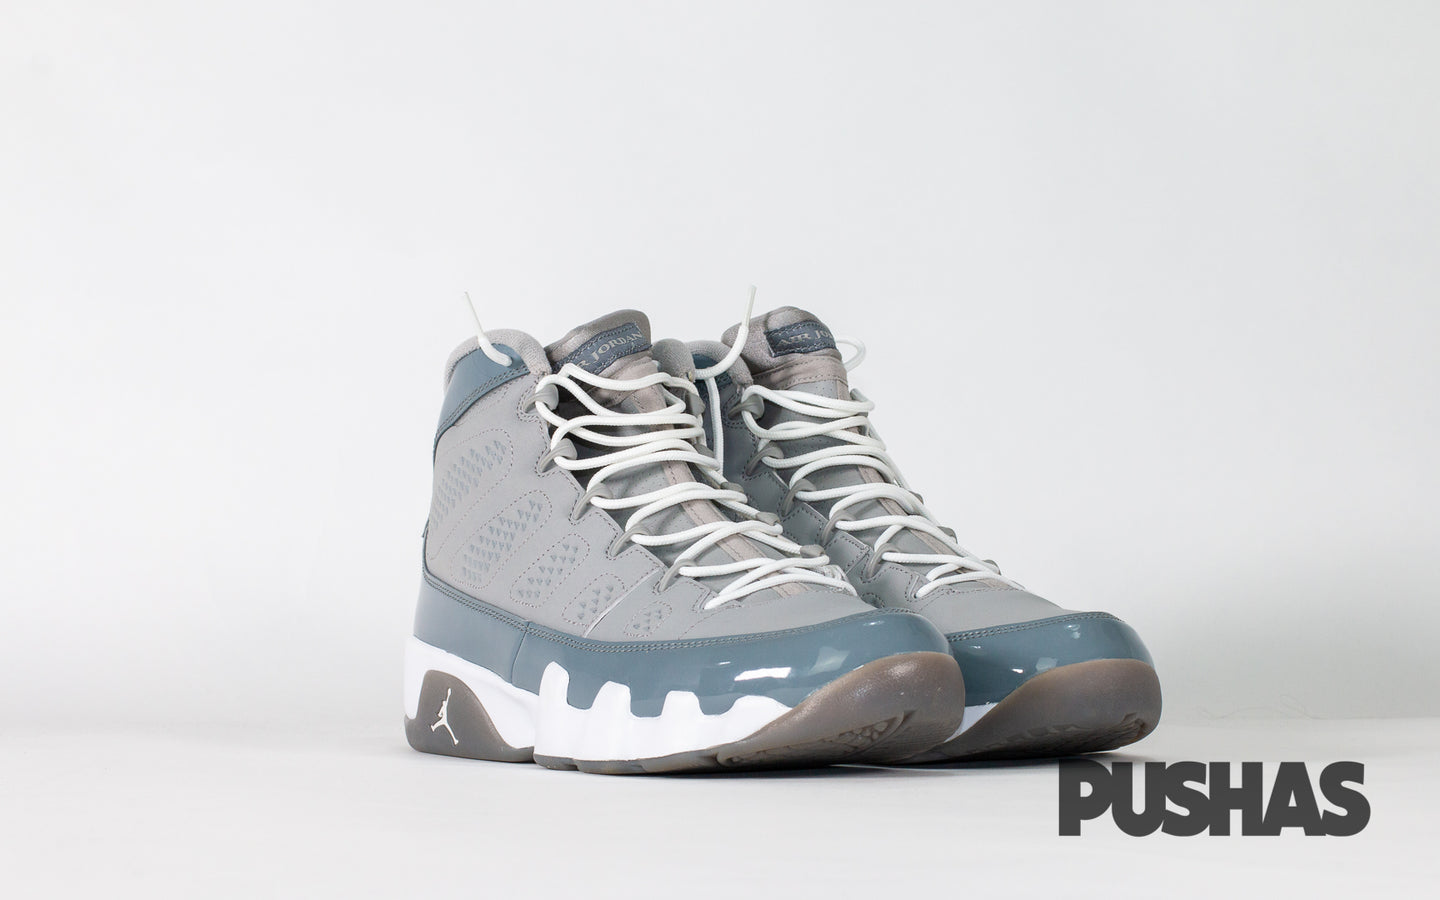 pushas-nike-Air-Jordan-9-Cool-Grey-2012